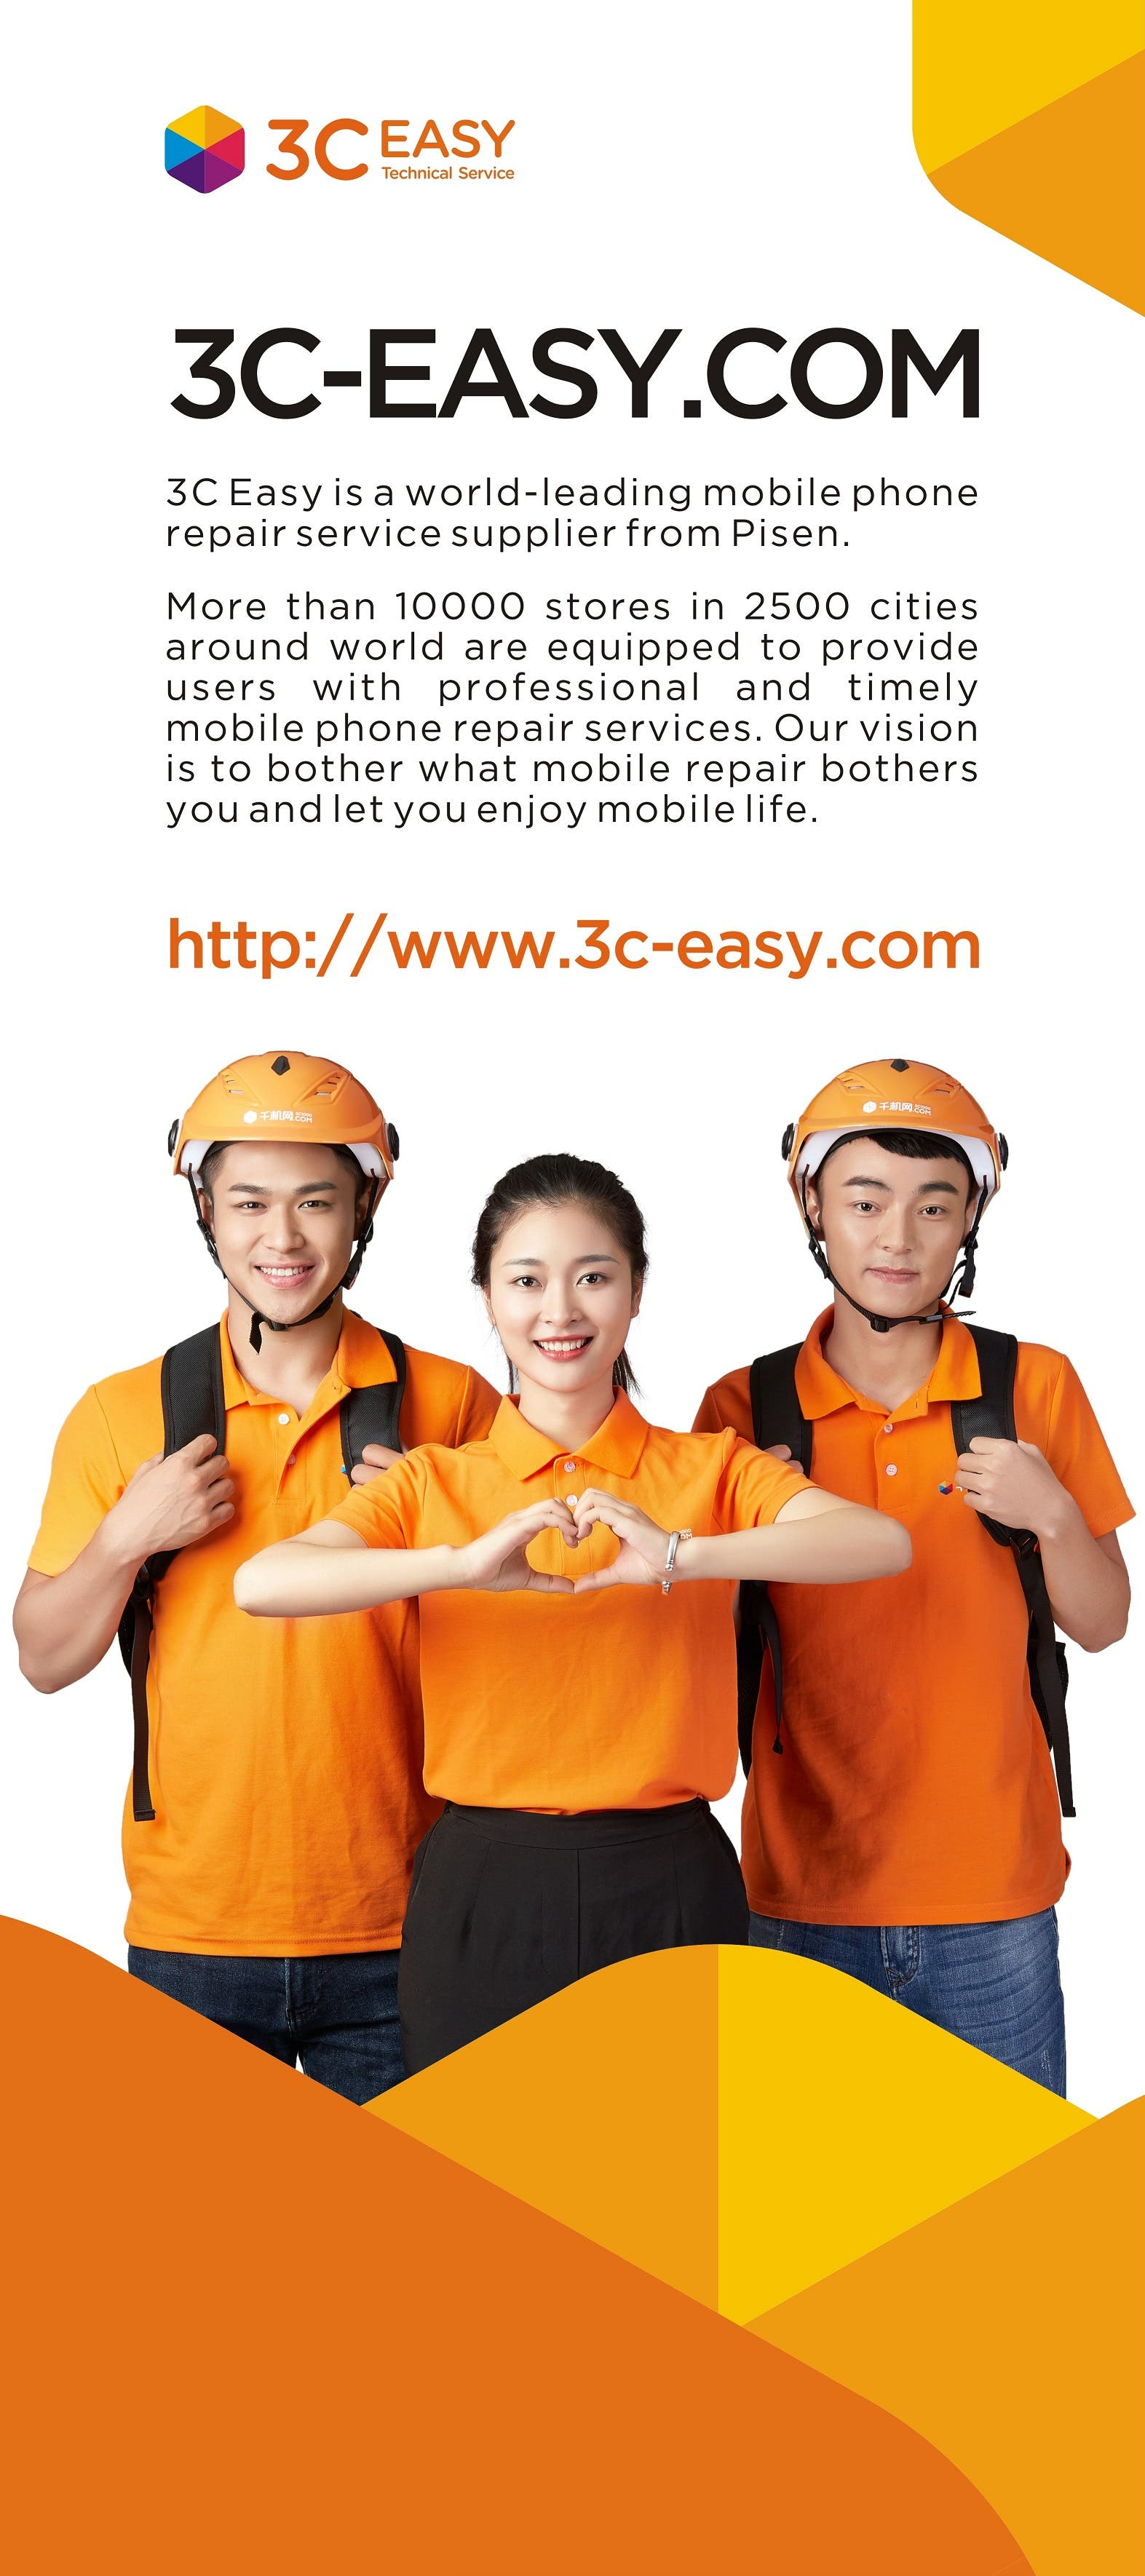 3C-Easy Announces Plans to Enter US Market